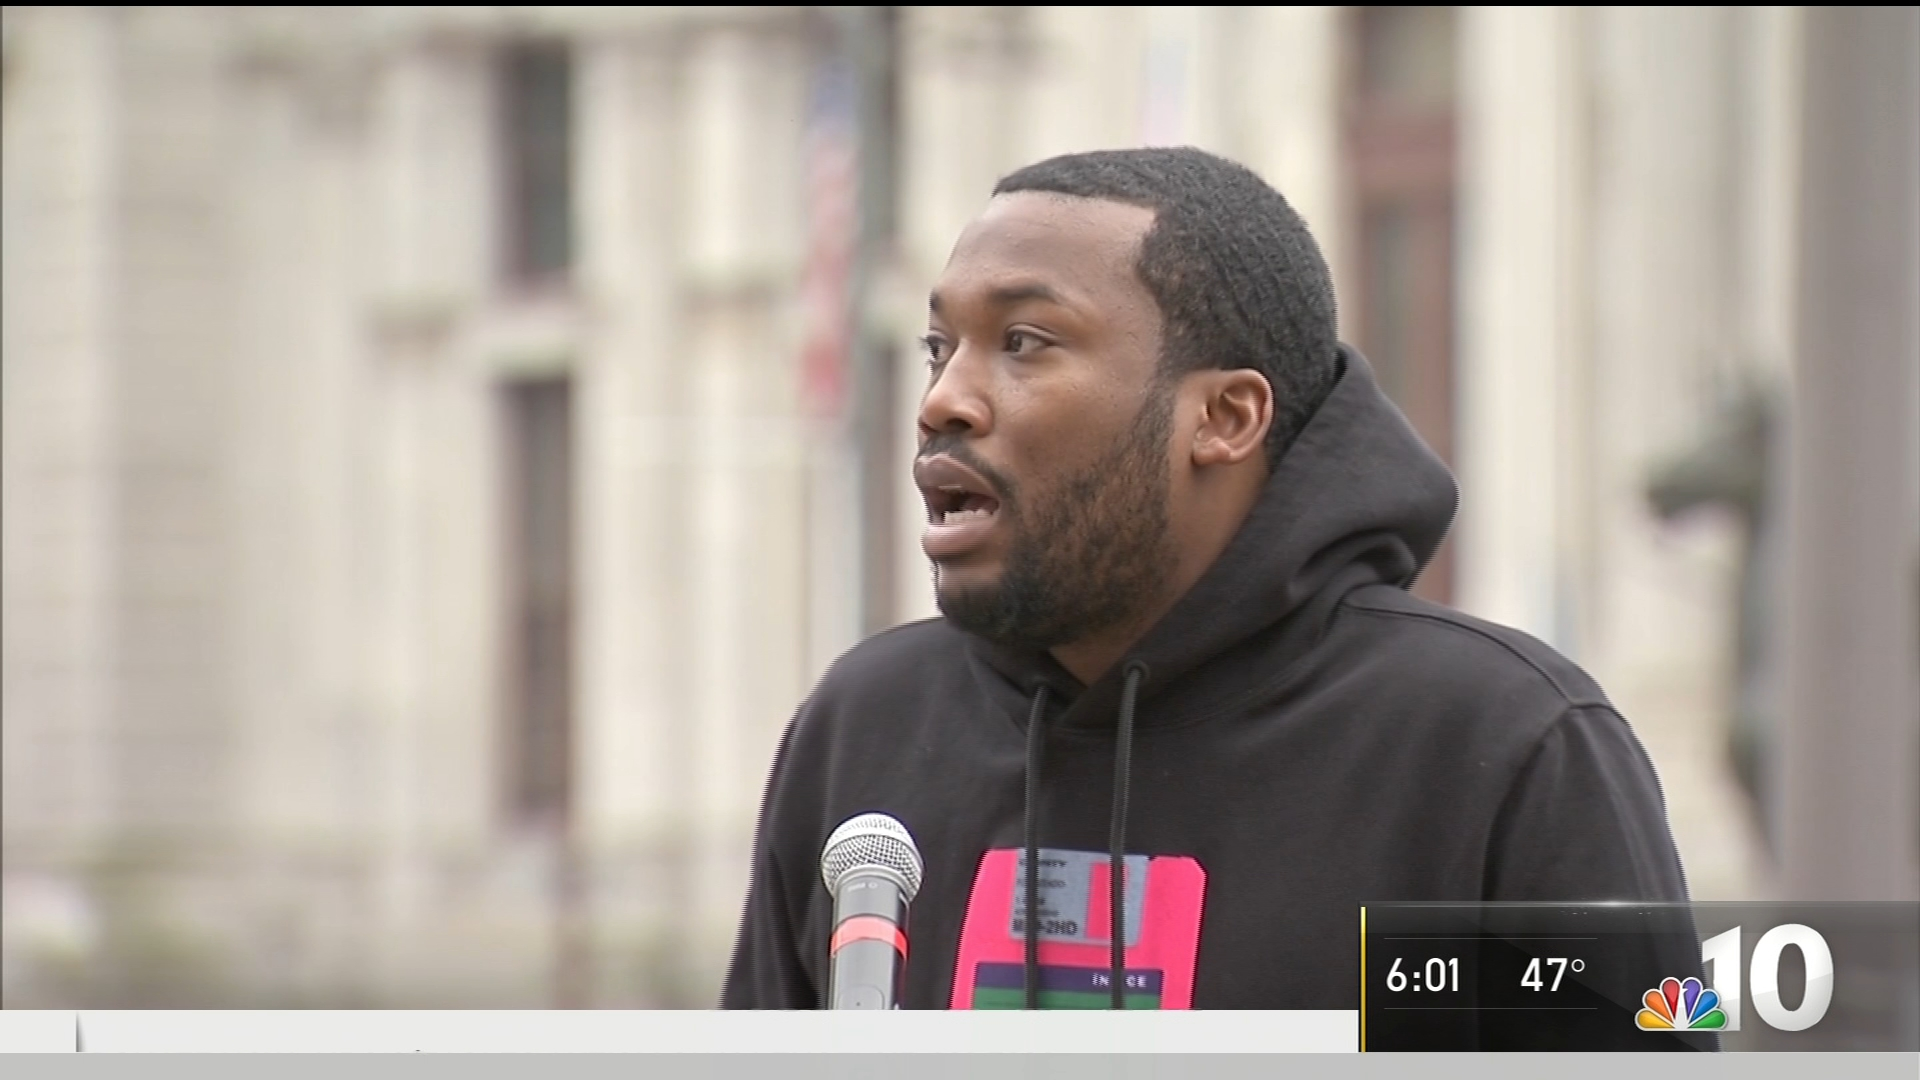 Meek Mill Urges Pa  to Reform Probation, Parole Systems